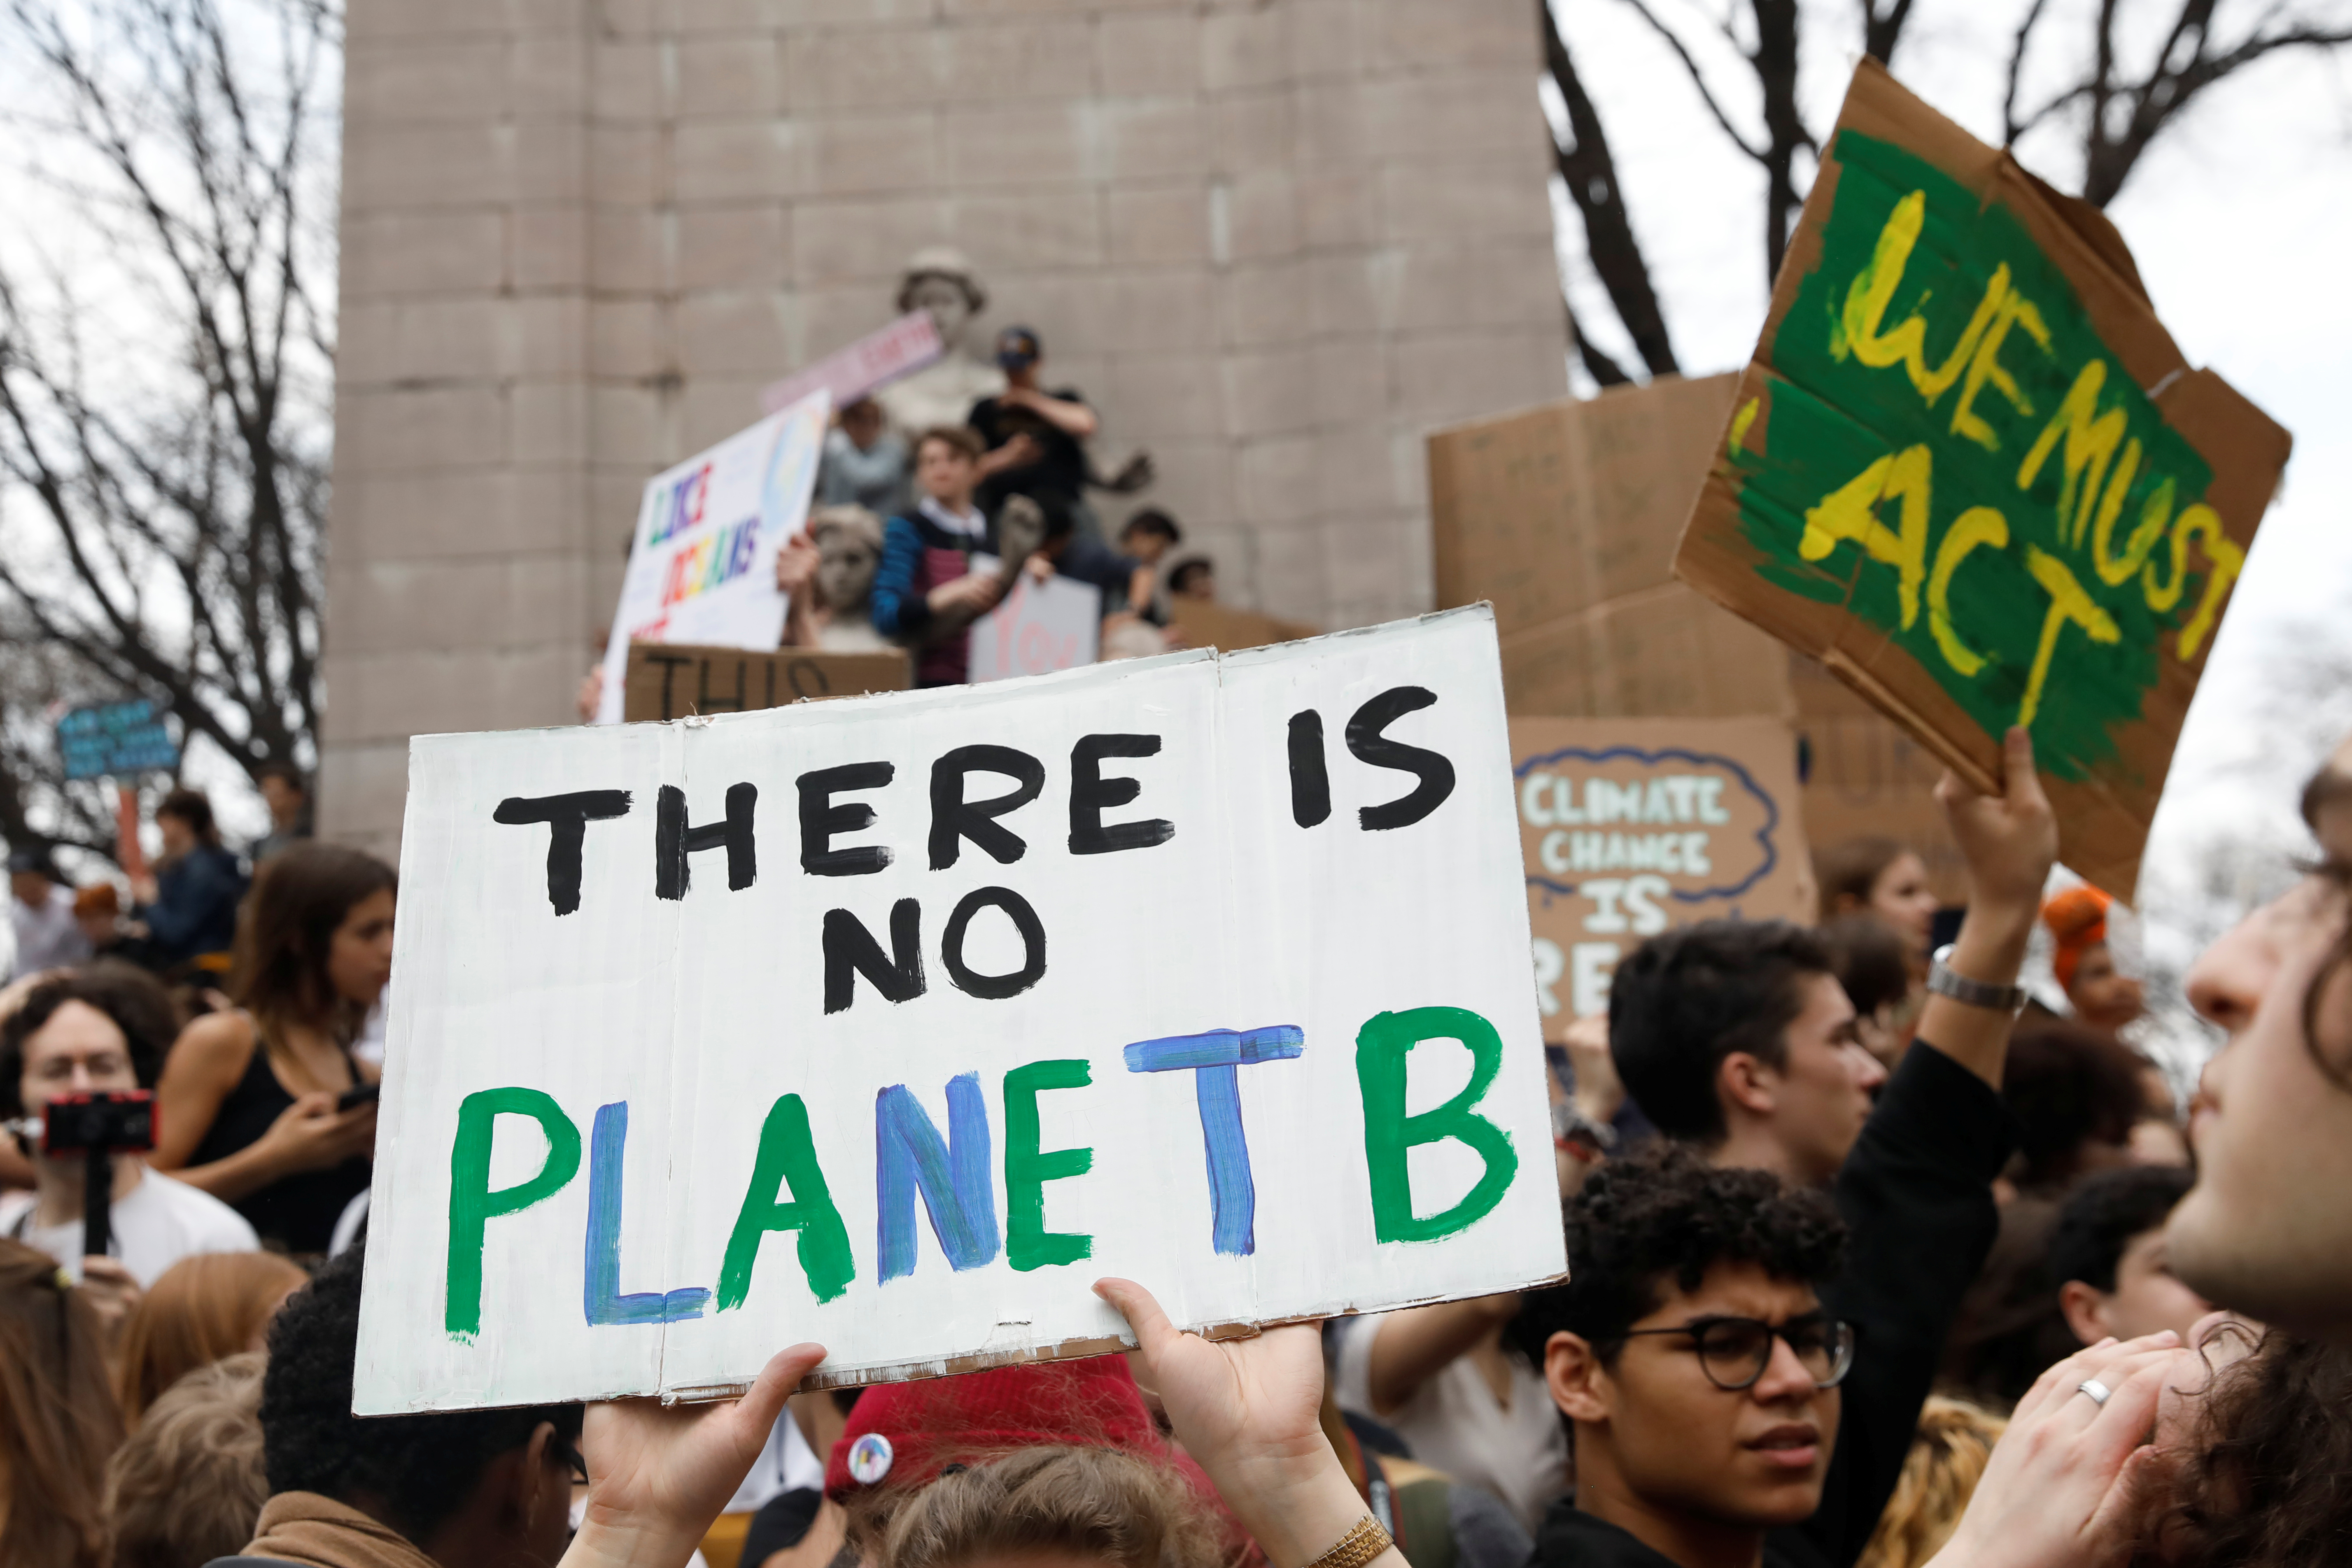 Students hold placards during a demonstration against climate change. REUTERS/Shannon Stapleton